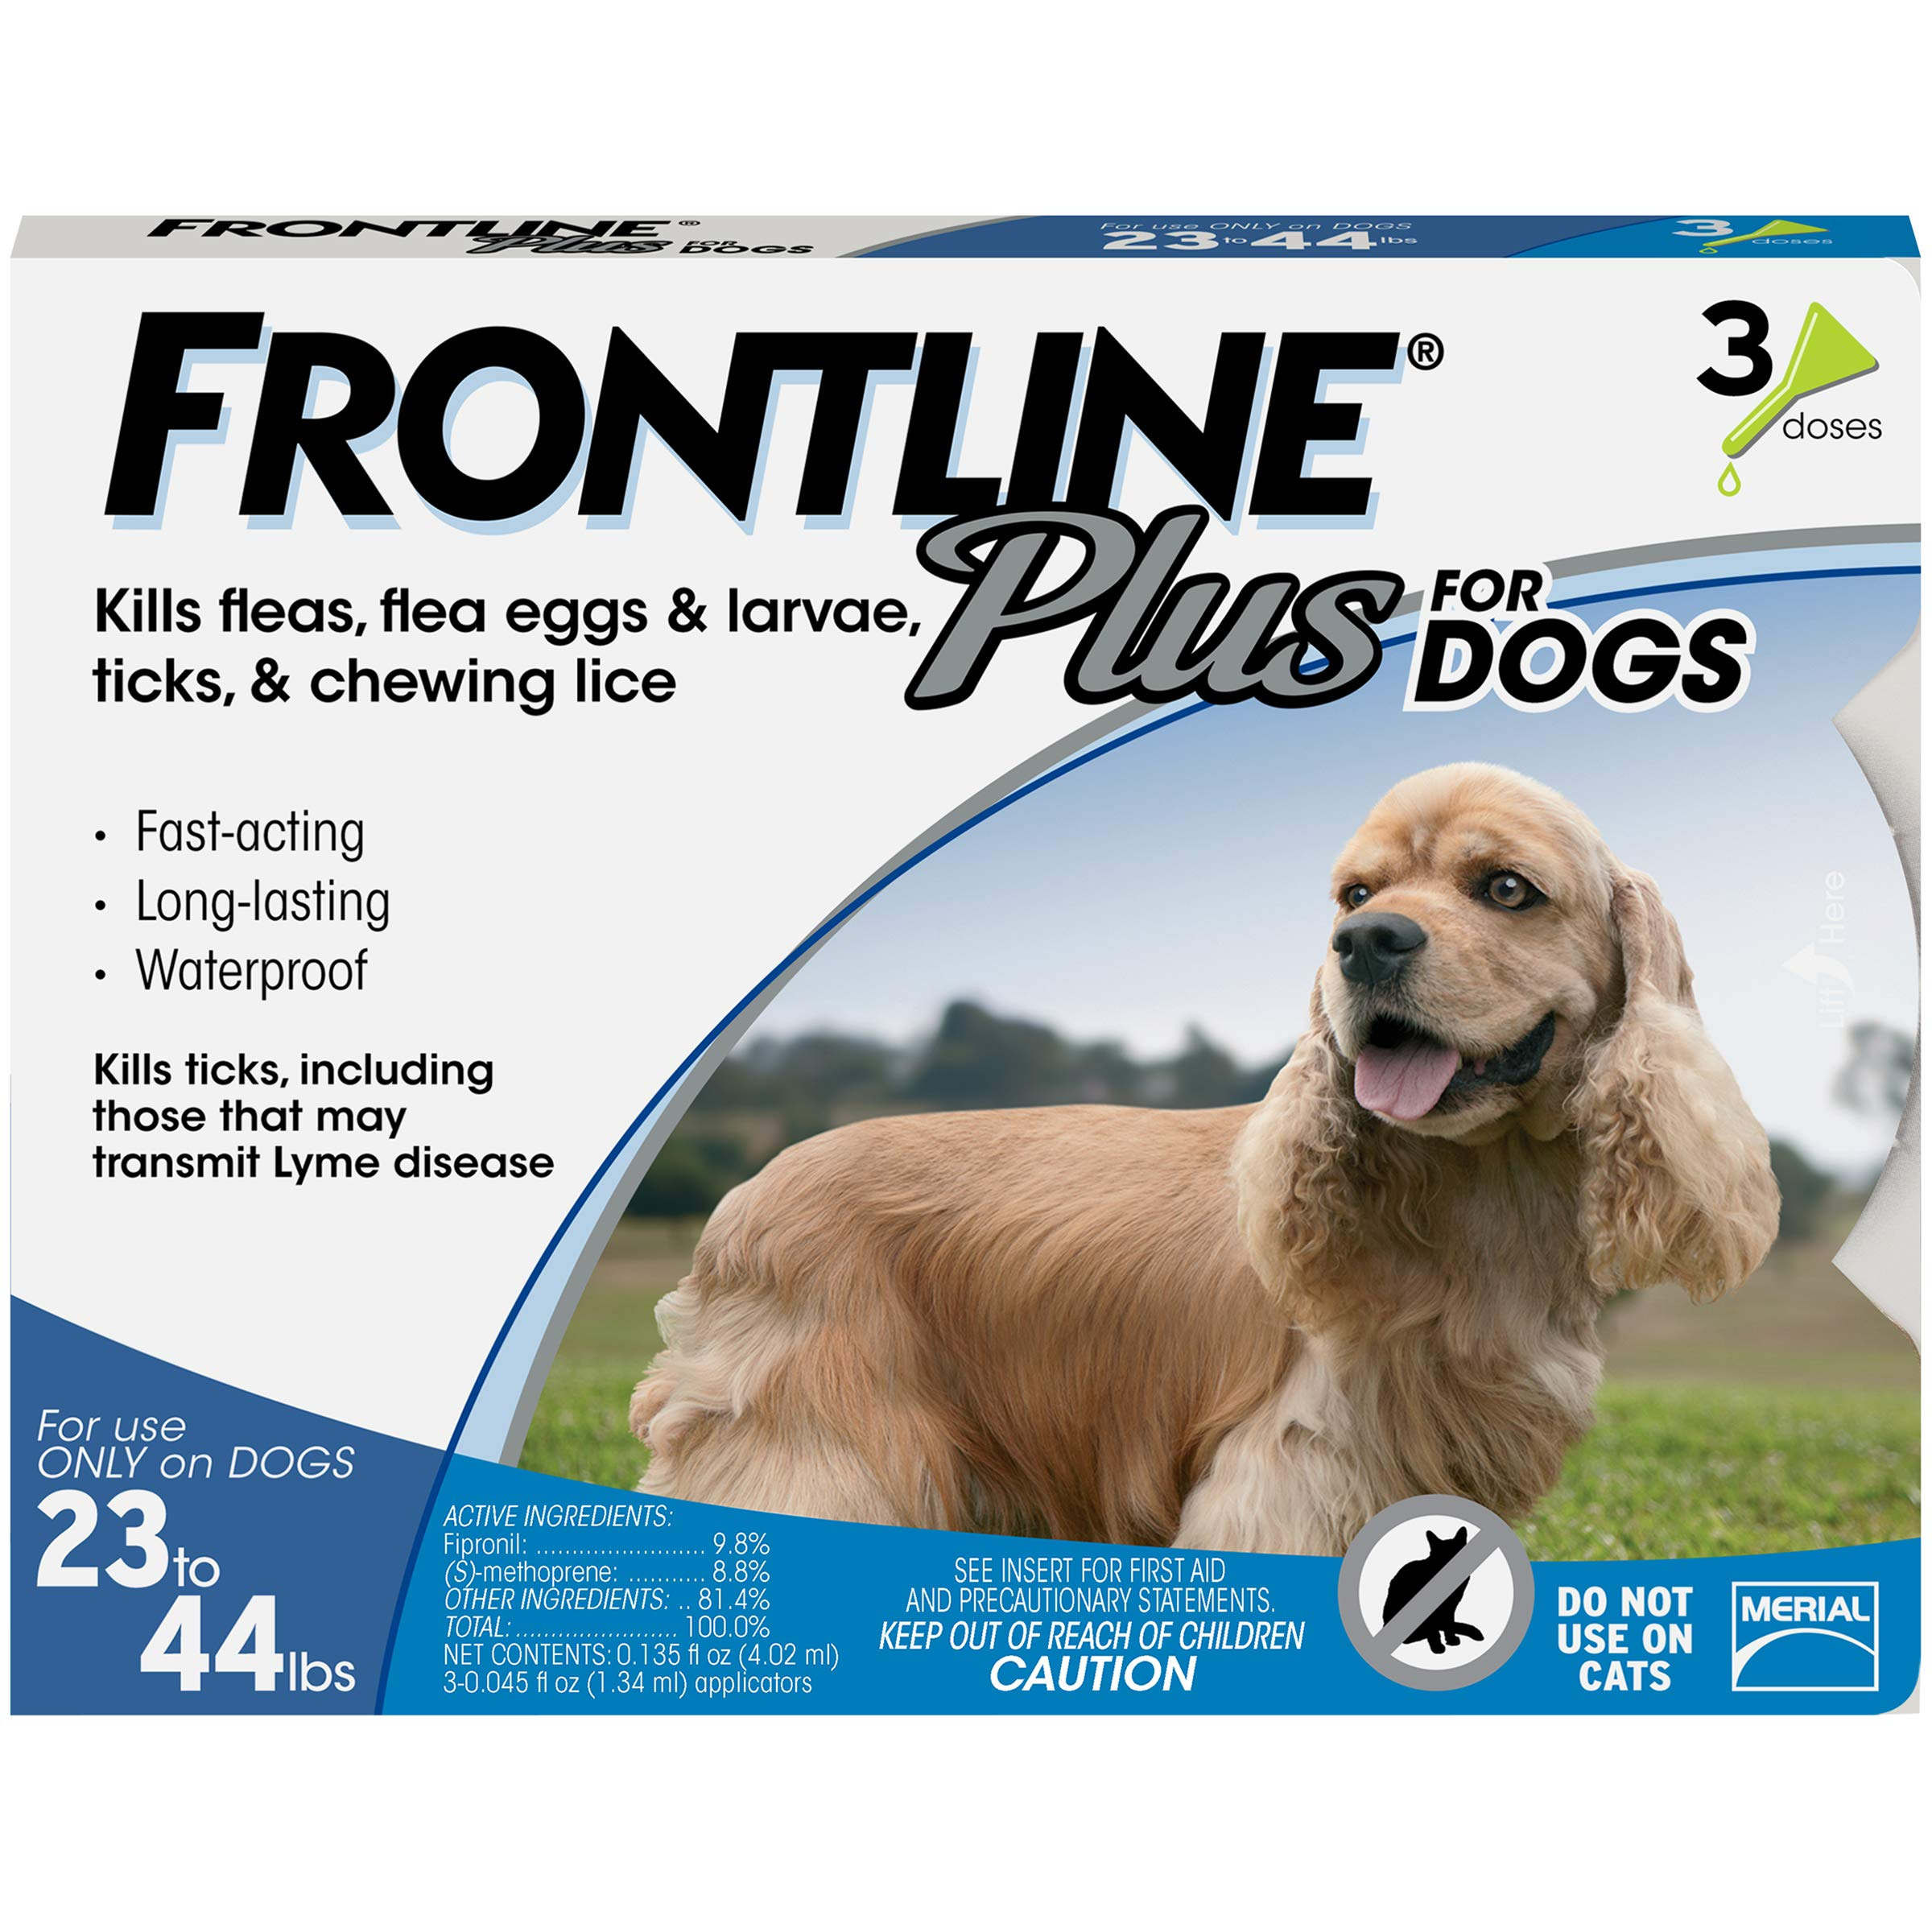 Frontline Plus for Dogs Medium Dog (23-44 pounds) Flea and Tick Treatment, 3 Doses by Frontline